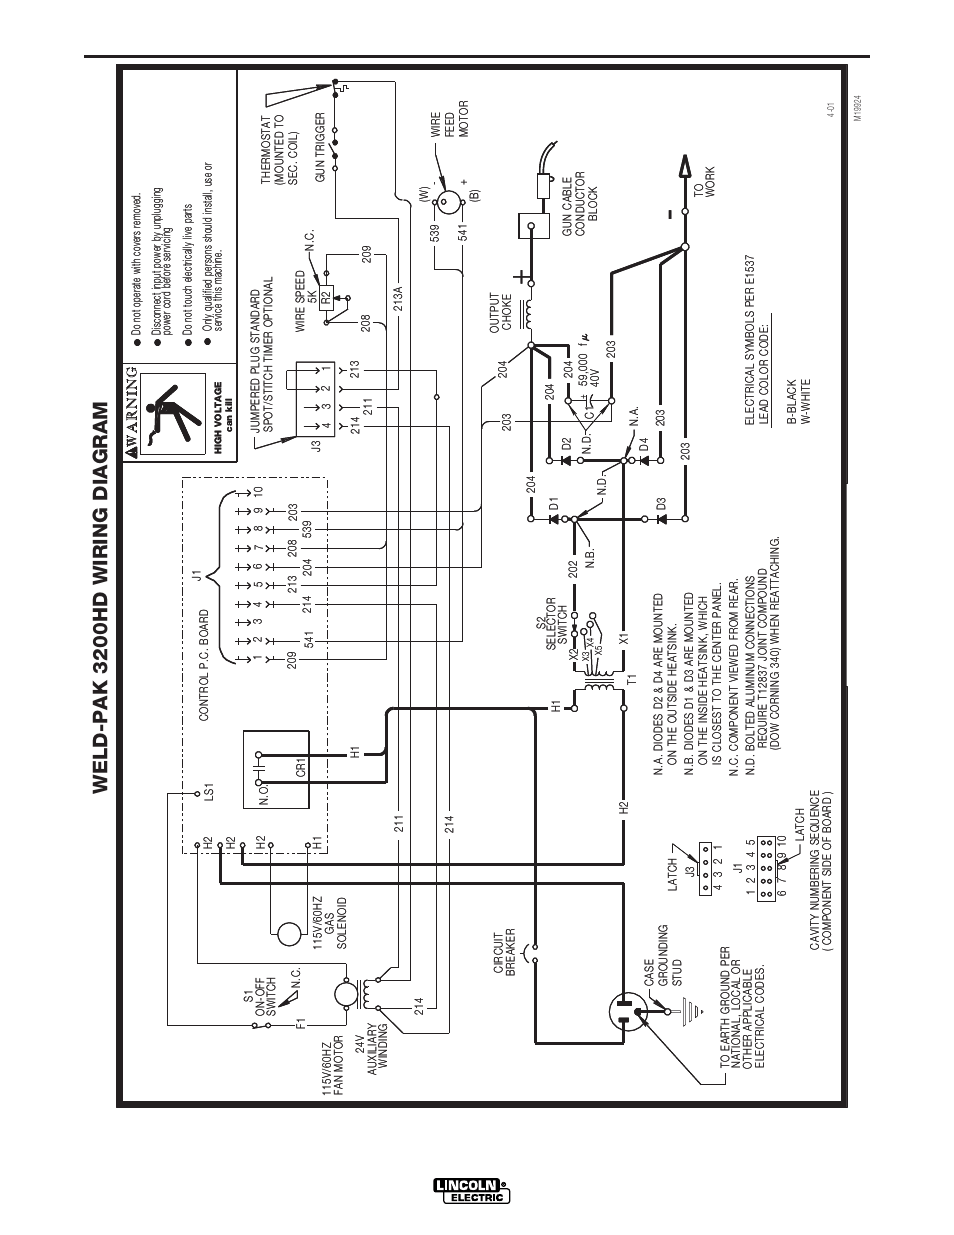 lincoln electric weld pak 3200hd page43?resize\\\\\\\\\\\\\\\\\\\\\=665%2C861 wiring diagram for millermatic gandul 45 77 79 119  at gsmx.co